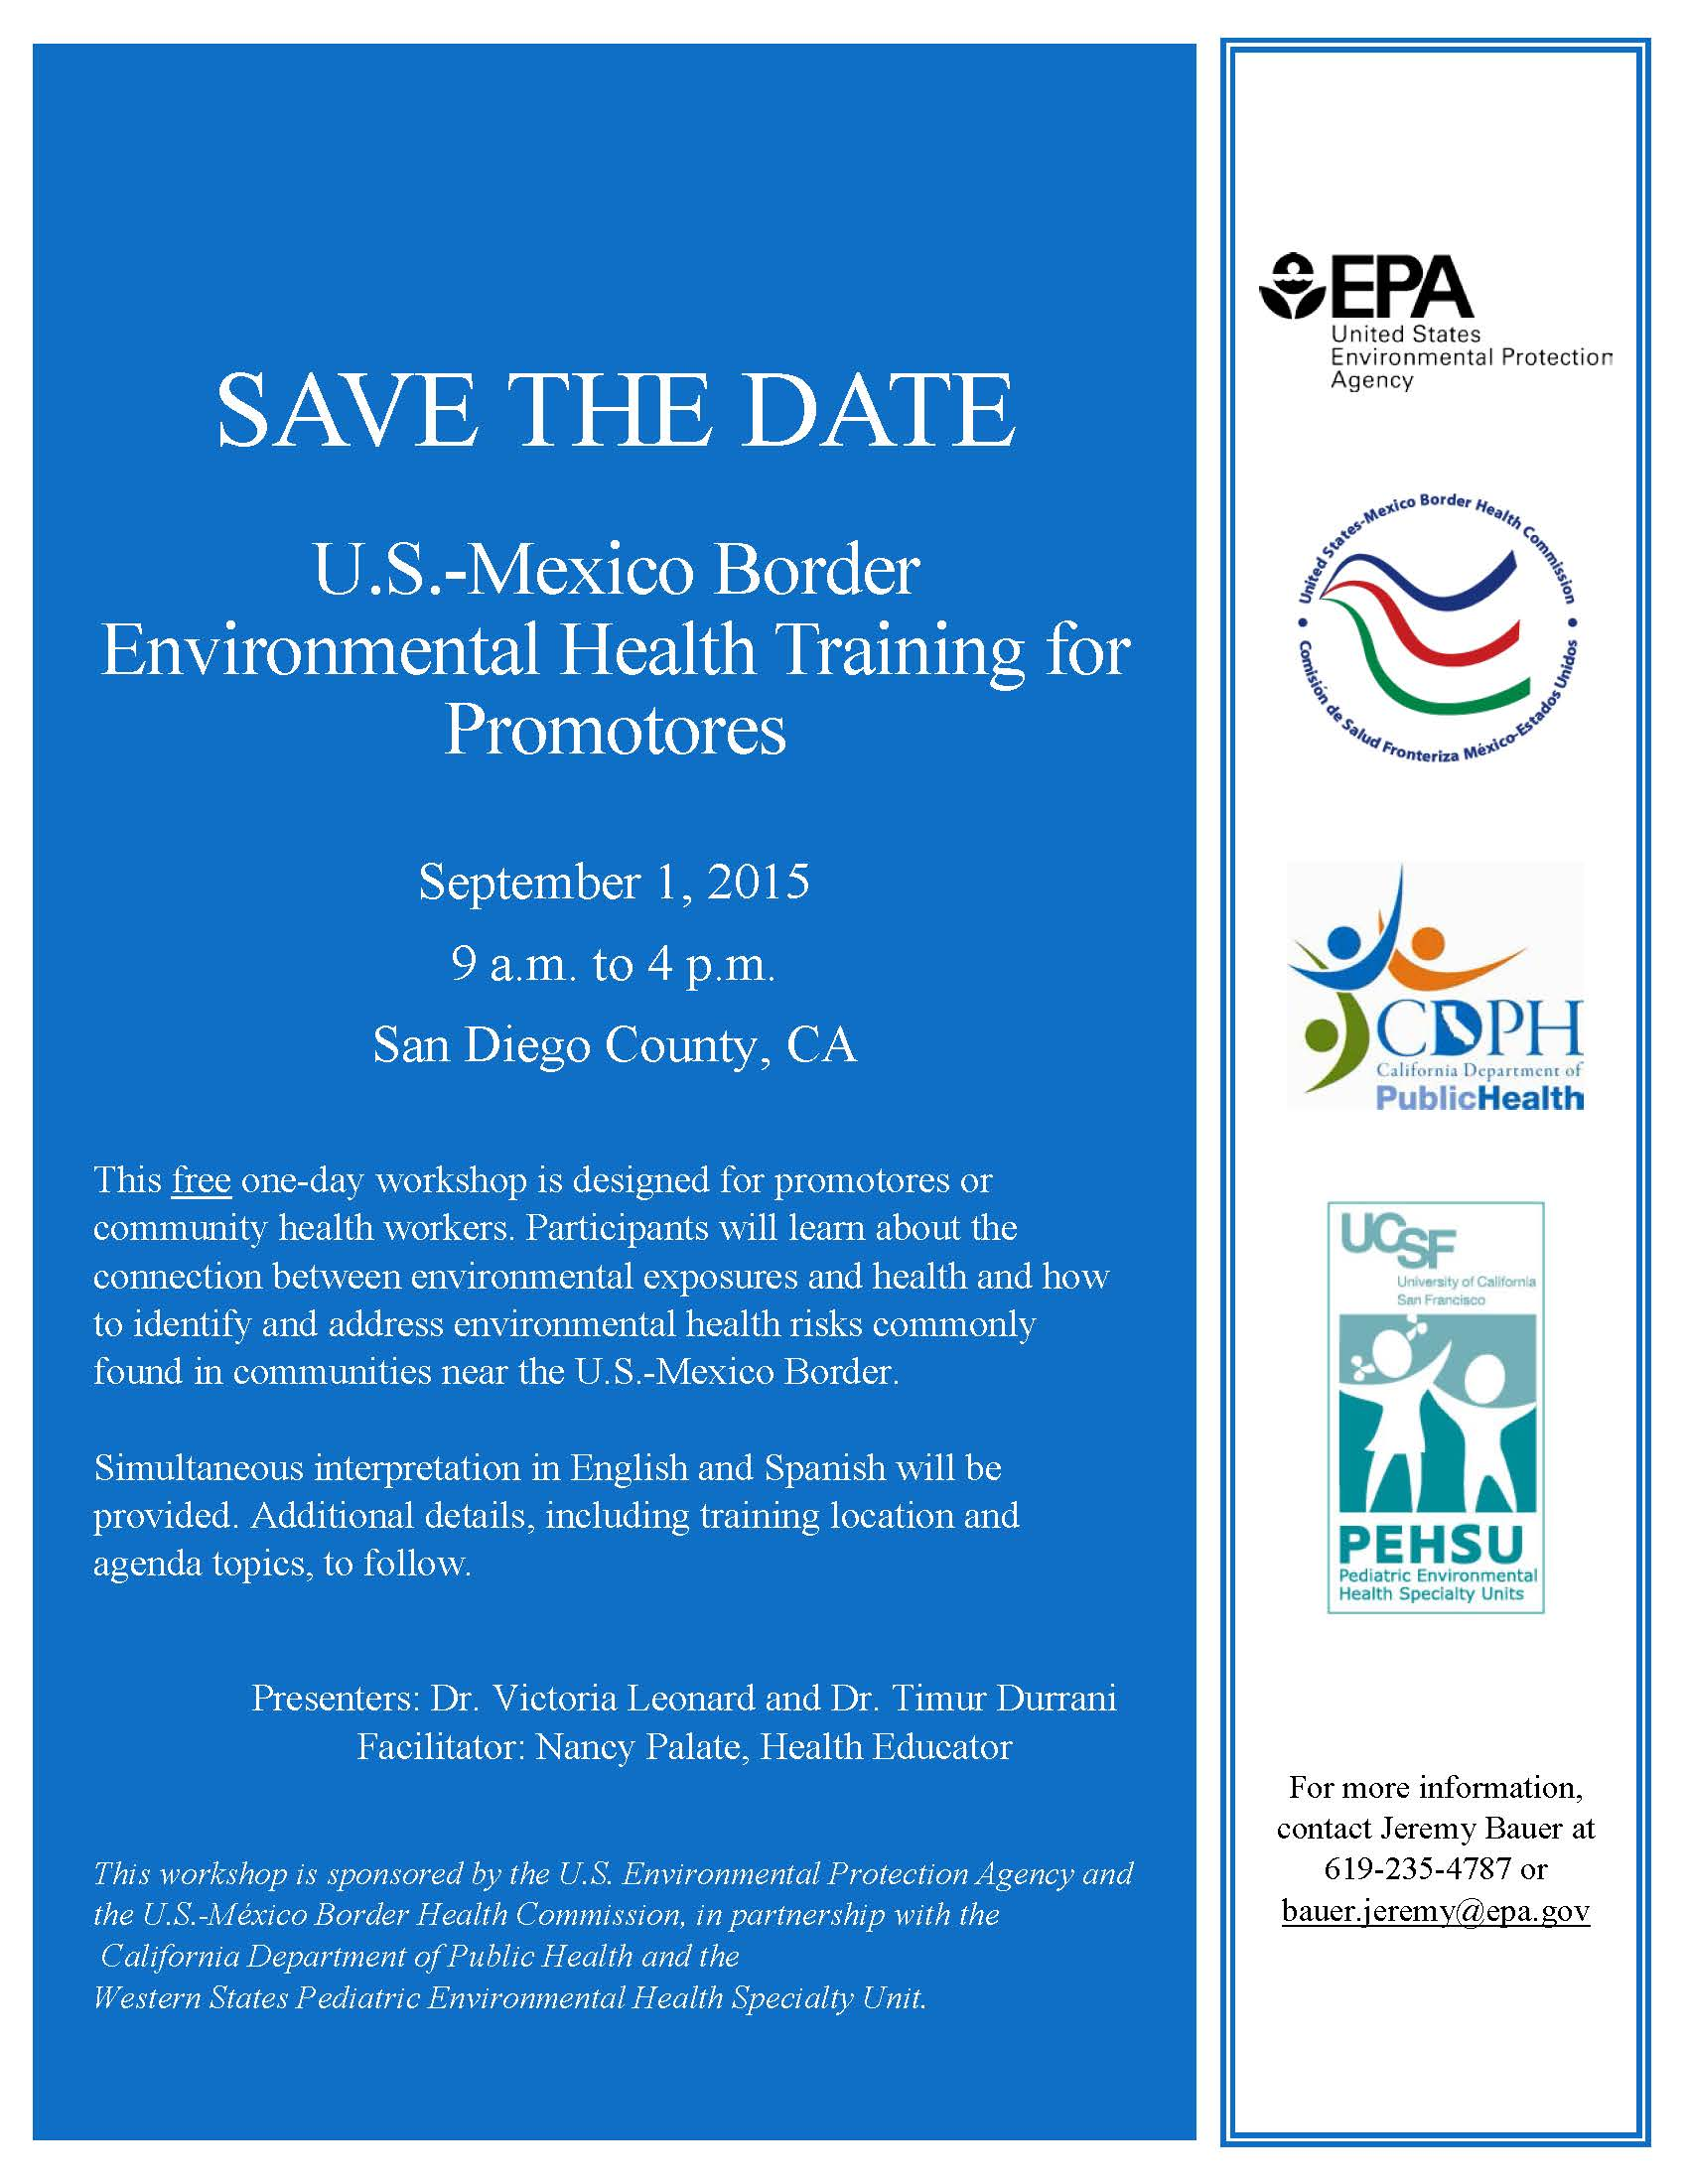 STD_EPA Promotores Training_Eng_San Diego_071715 FINAL_Page_1